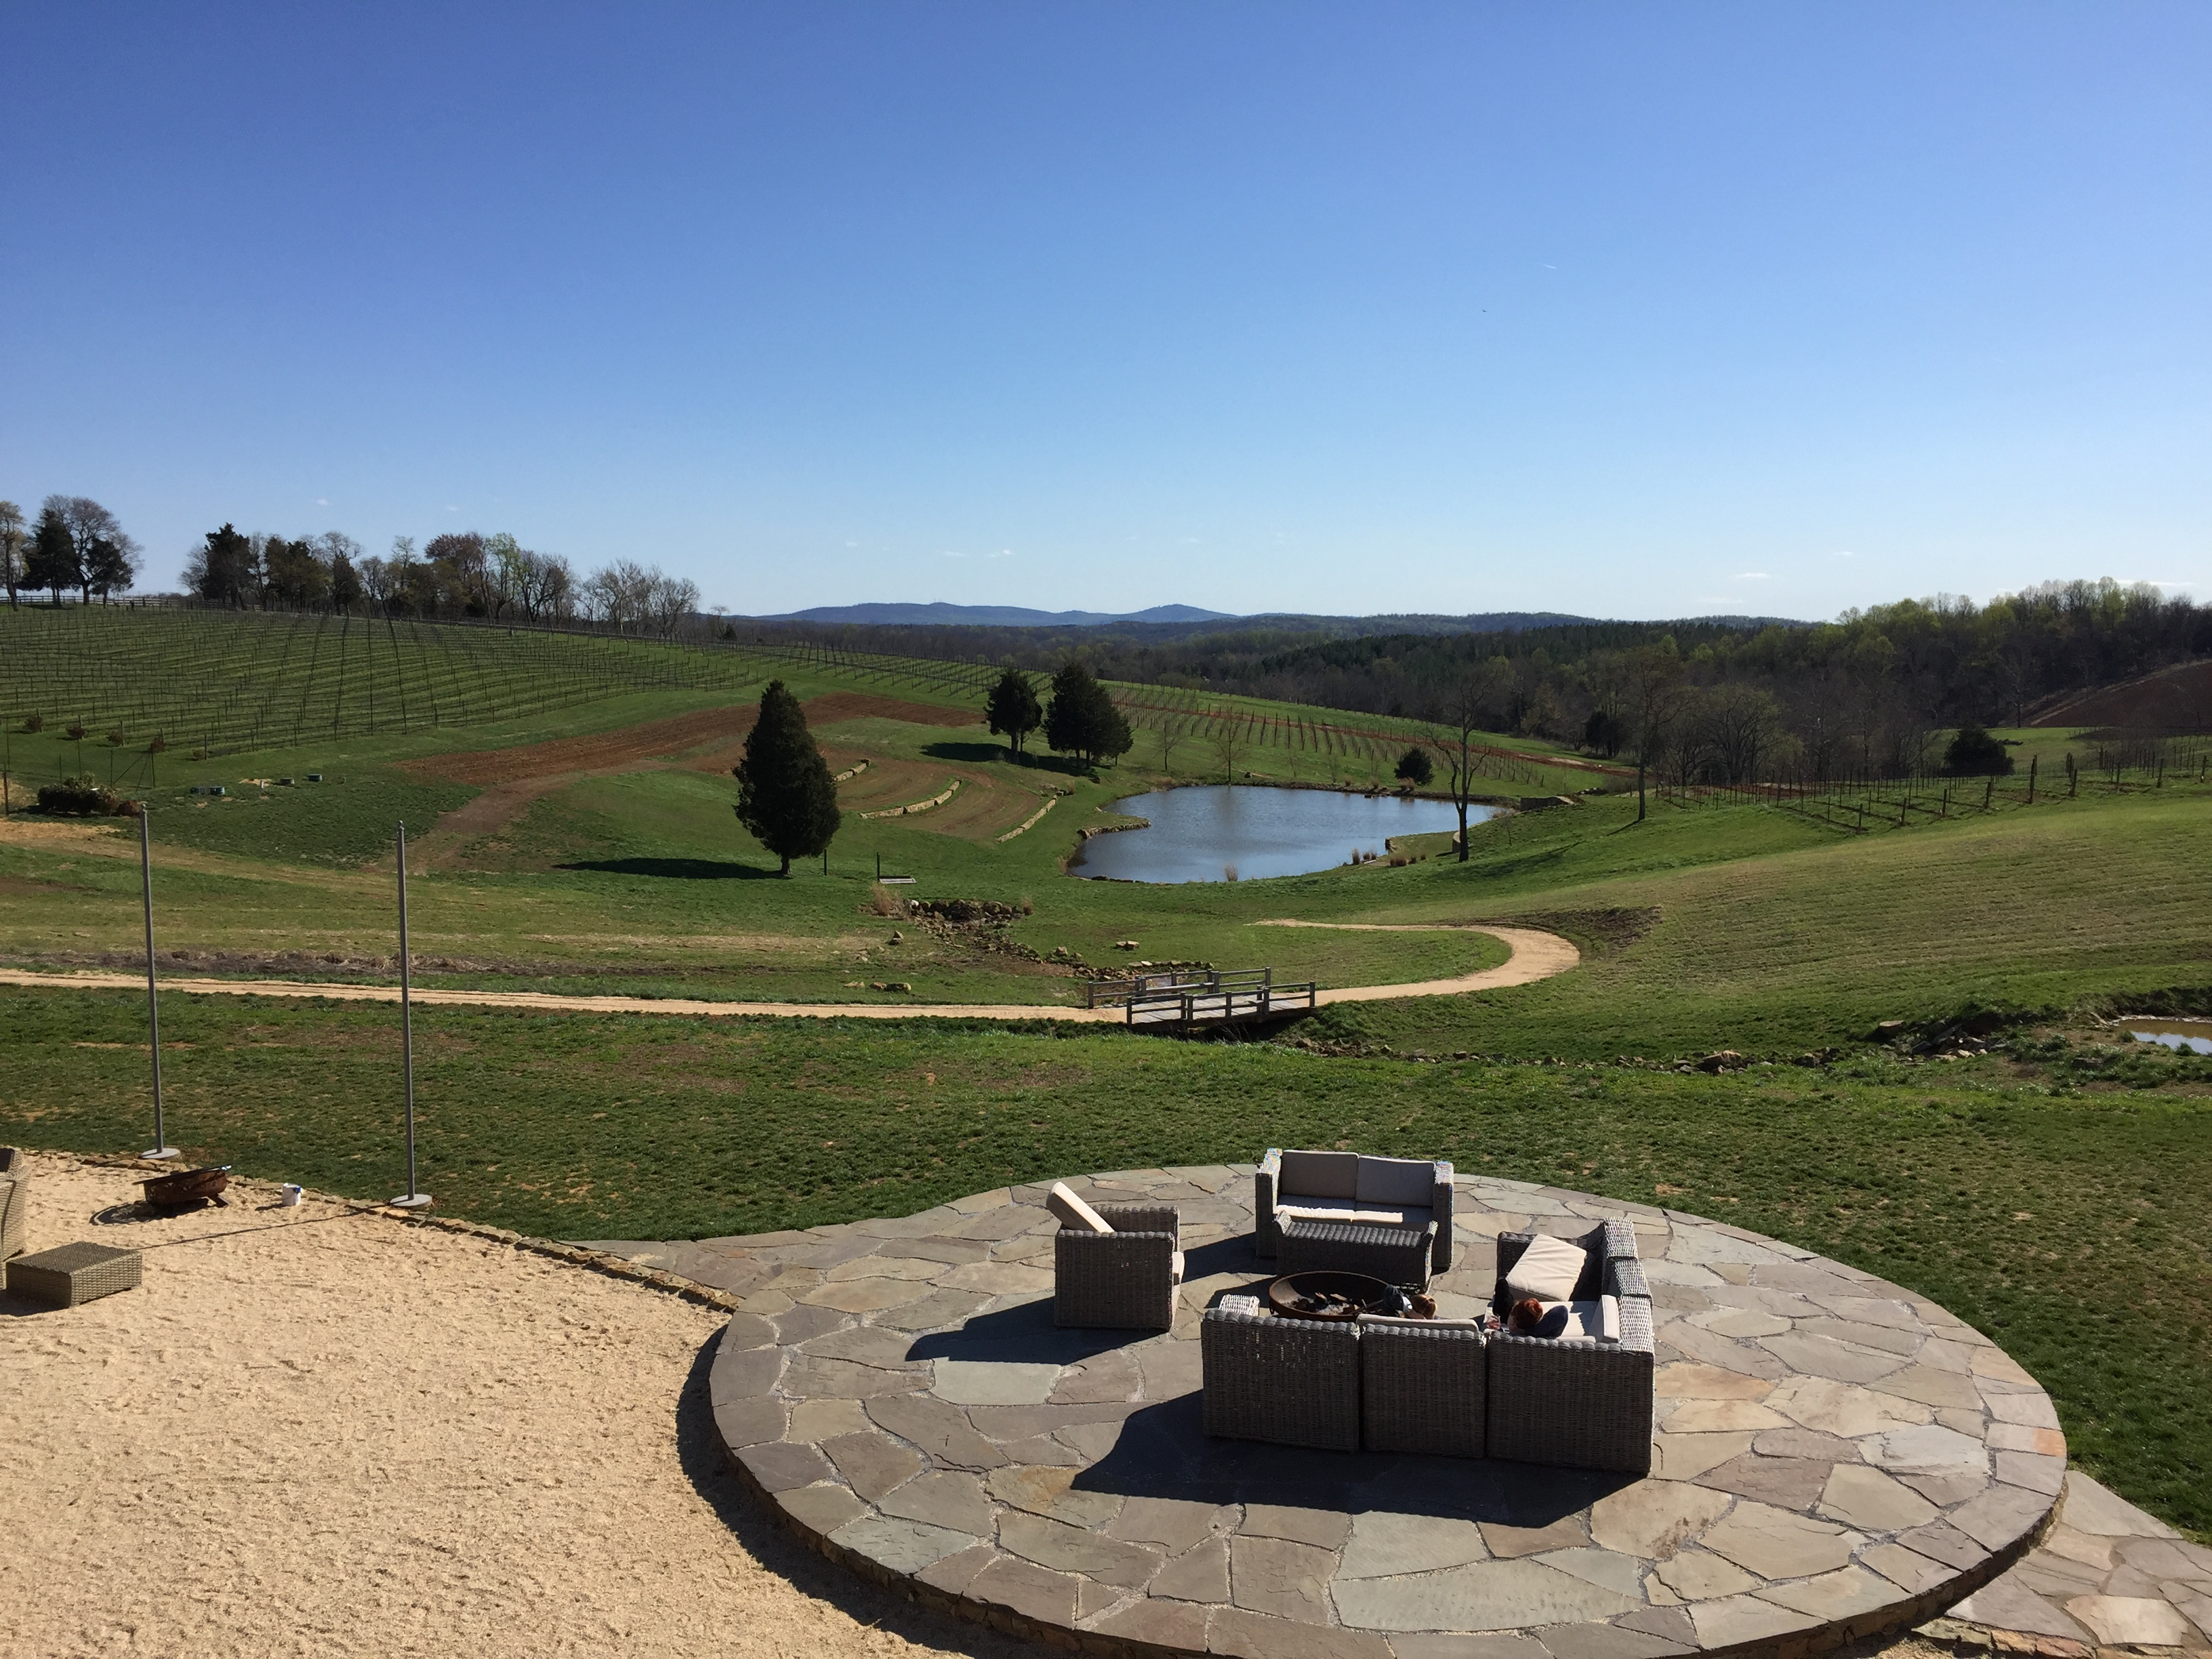 Part 2 of our Northern Virginia Wine Tasting Series includes reviews of Stone Tower Winery and Willowcroft Farm.